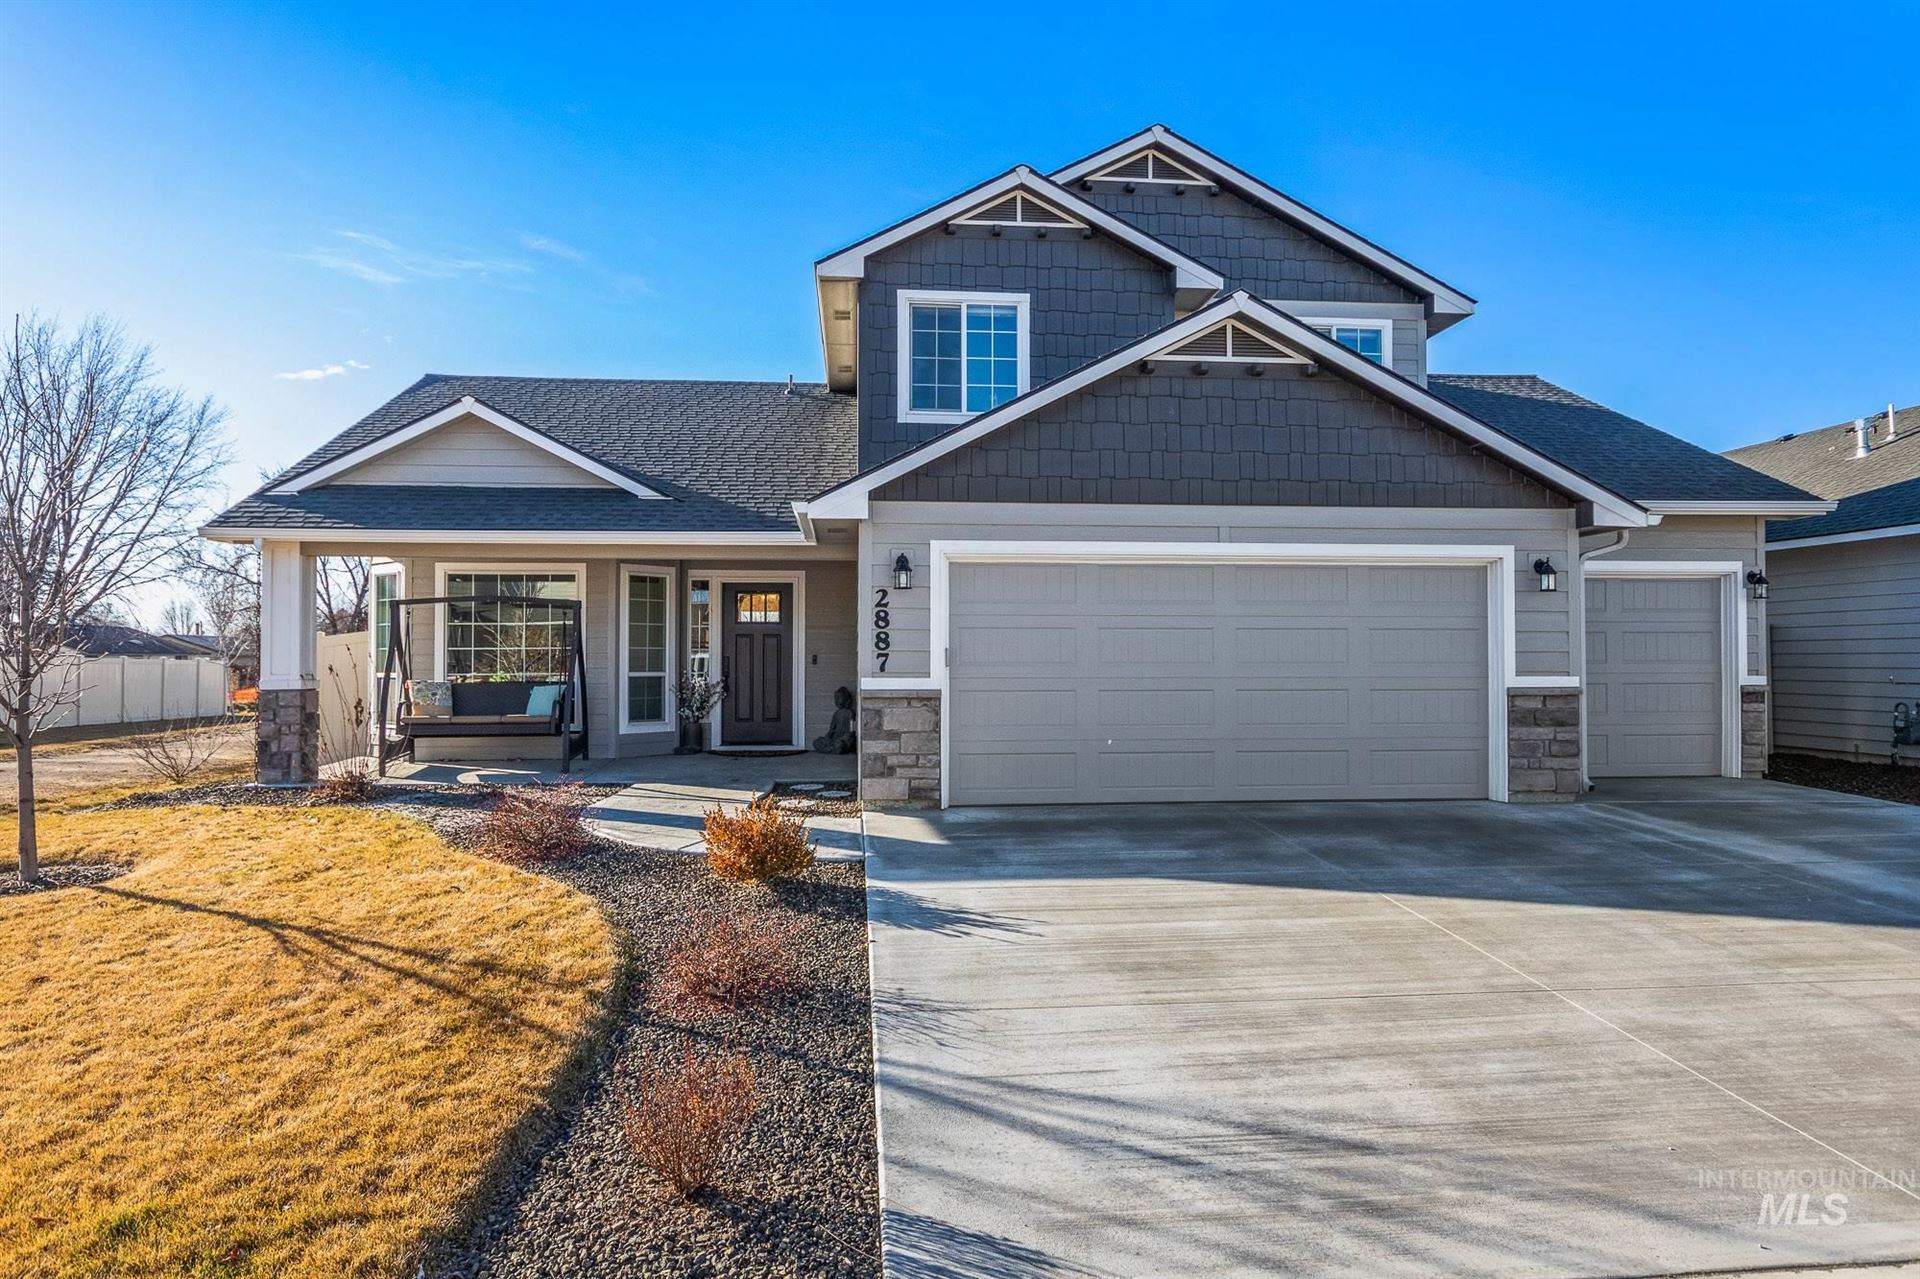 Photo of 2887 NW 13th St, Meridian, ID 83646 (MLS # 98791484)